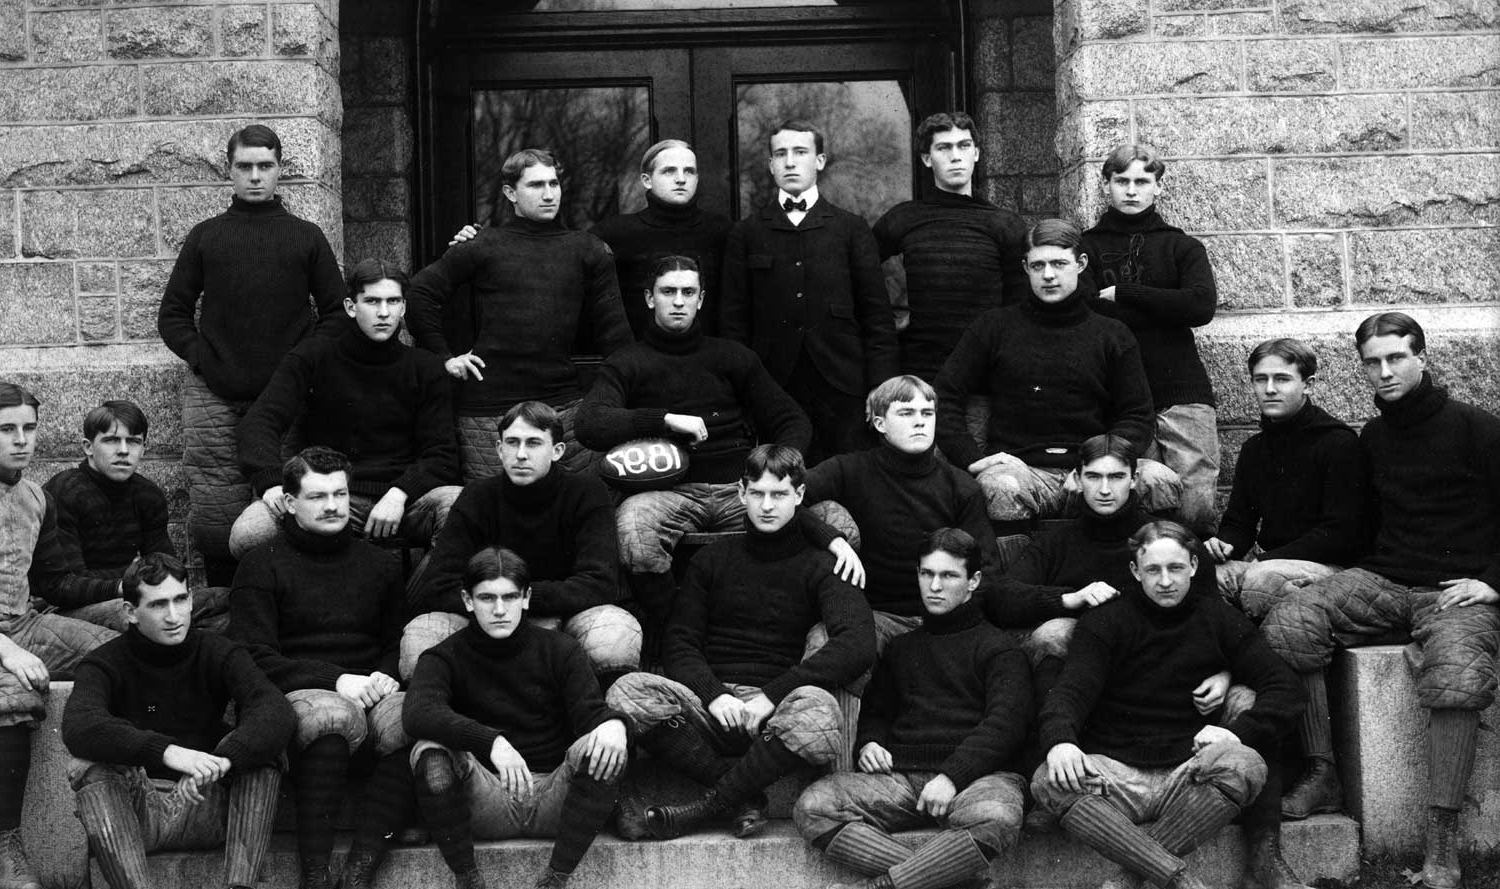 the football team poses together back in the late 1800s